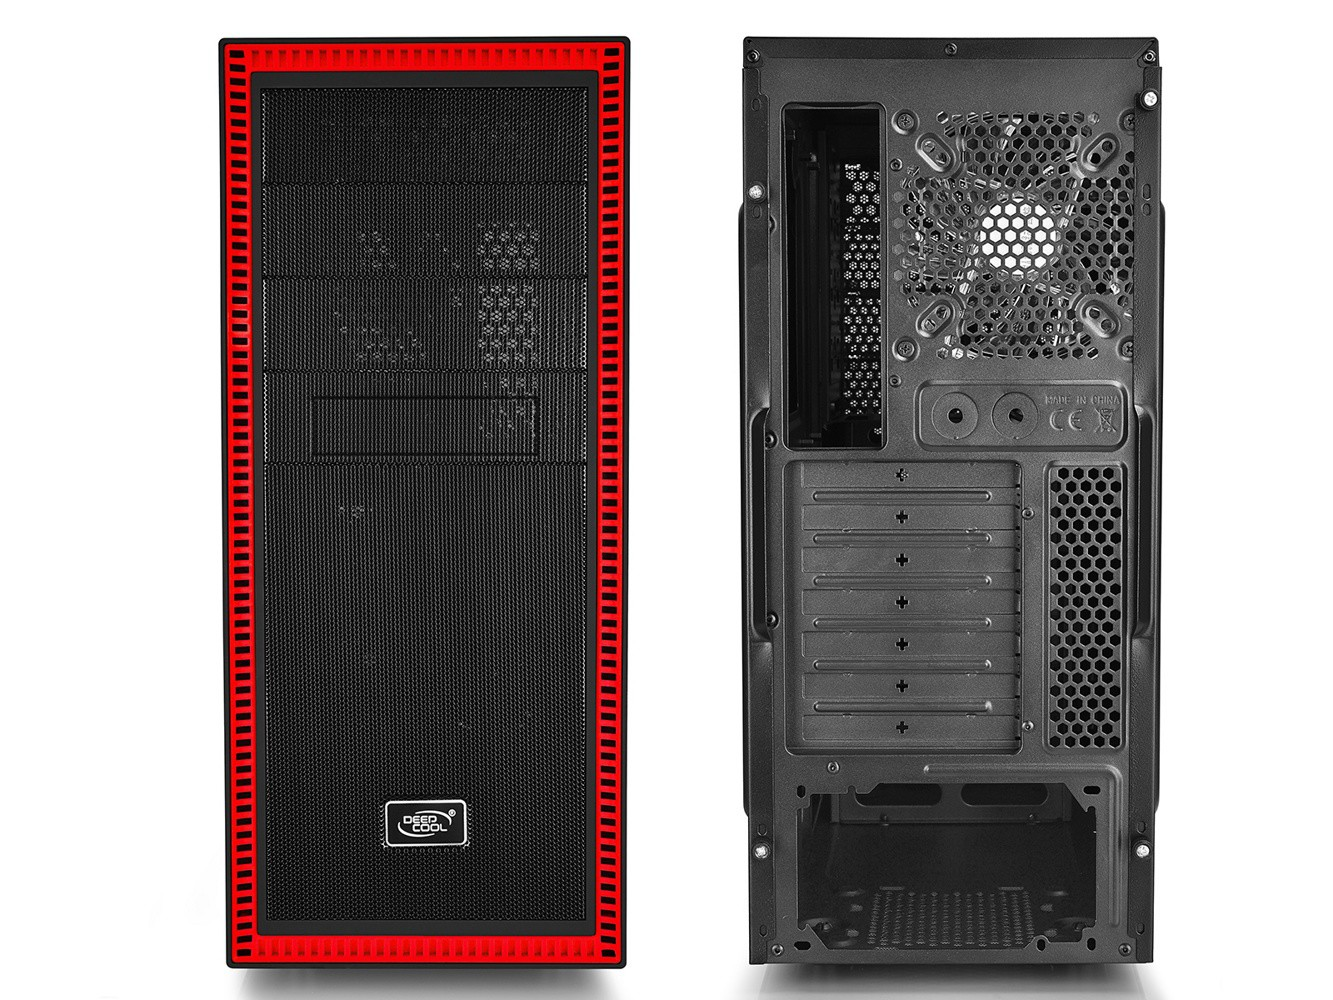 Корпус Deepcool Tesseract SW RD (DP-ATX-TSRBKRD) Black-Red (Miditower, ATX, USB 3.0, 2xFan, Window)